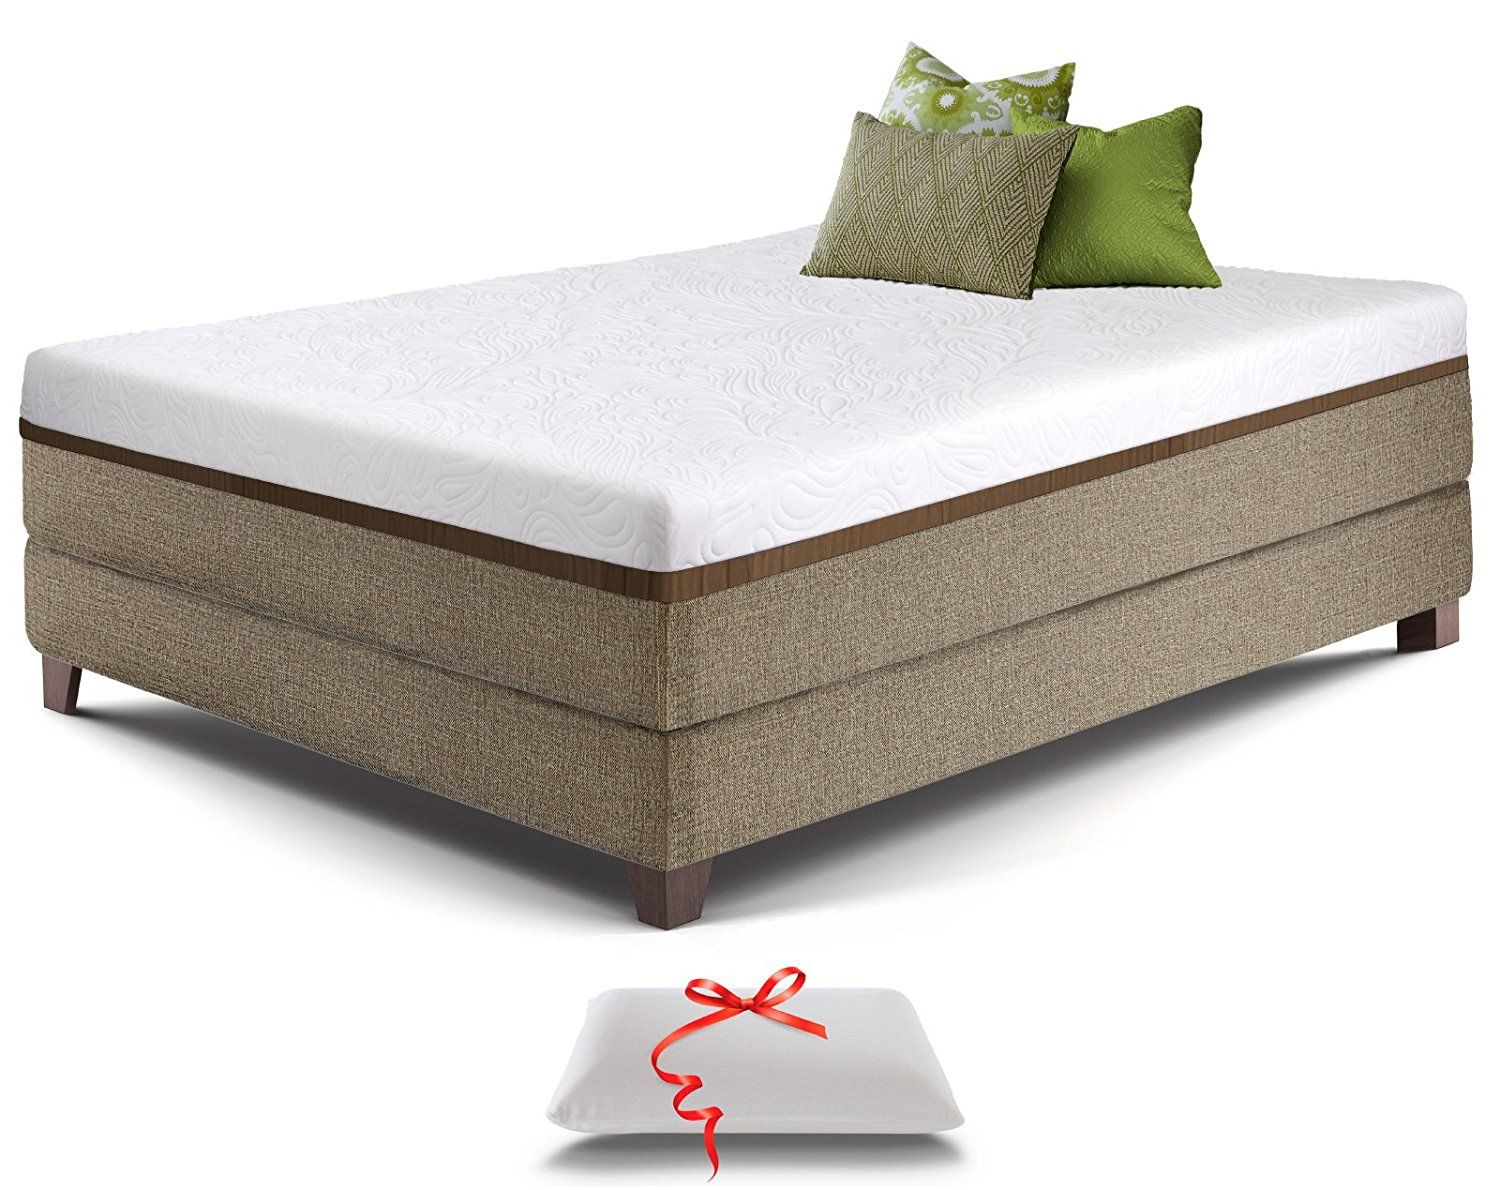 gallery pillow amazoncom sleep micro northpoint memory quilted foam king size innovations cushion gel